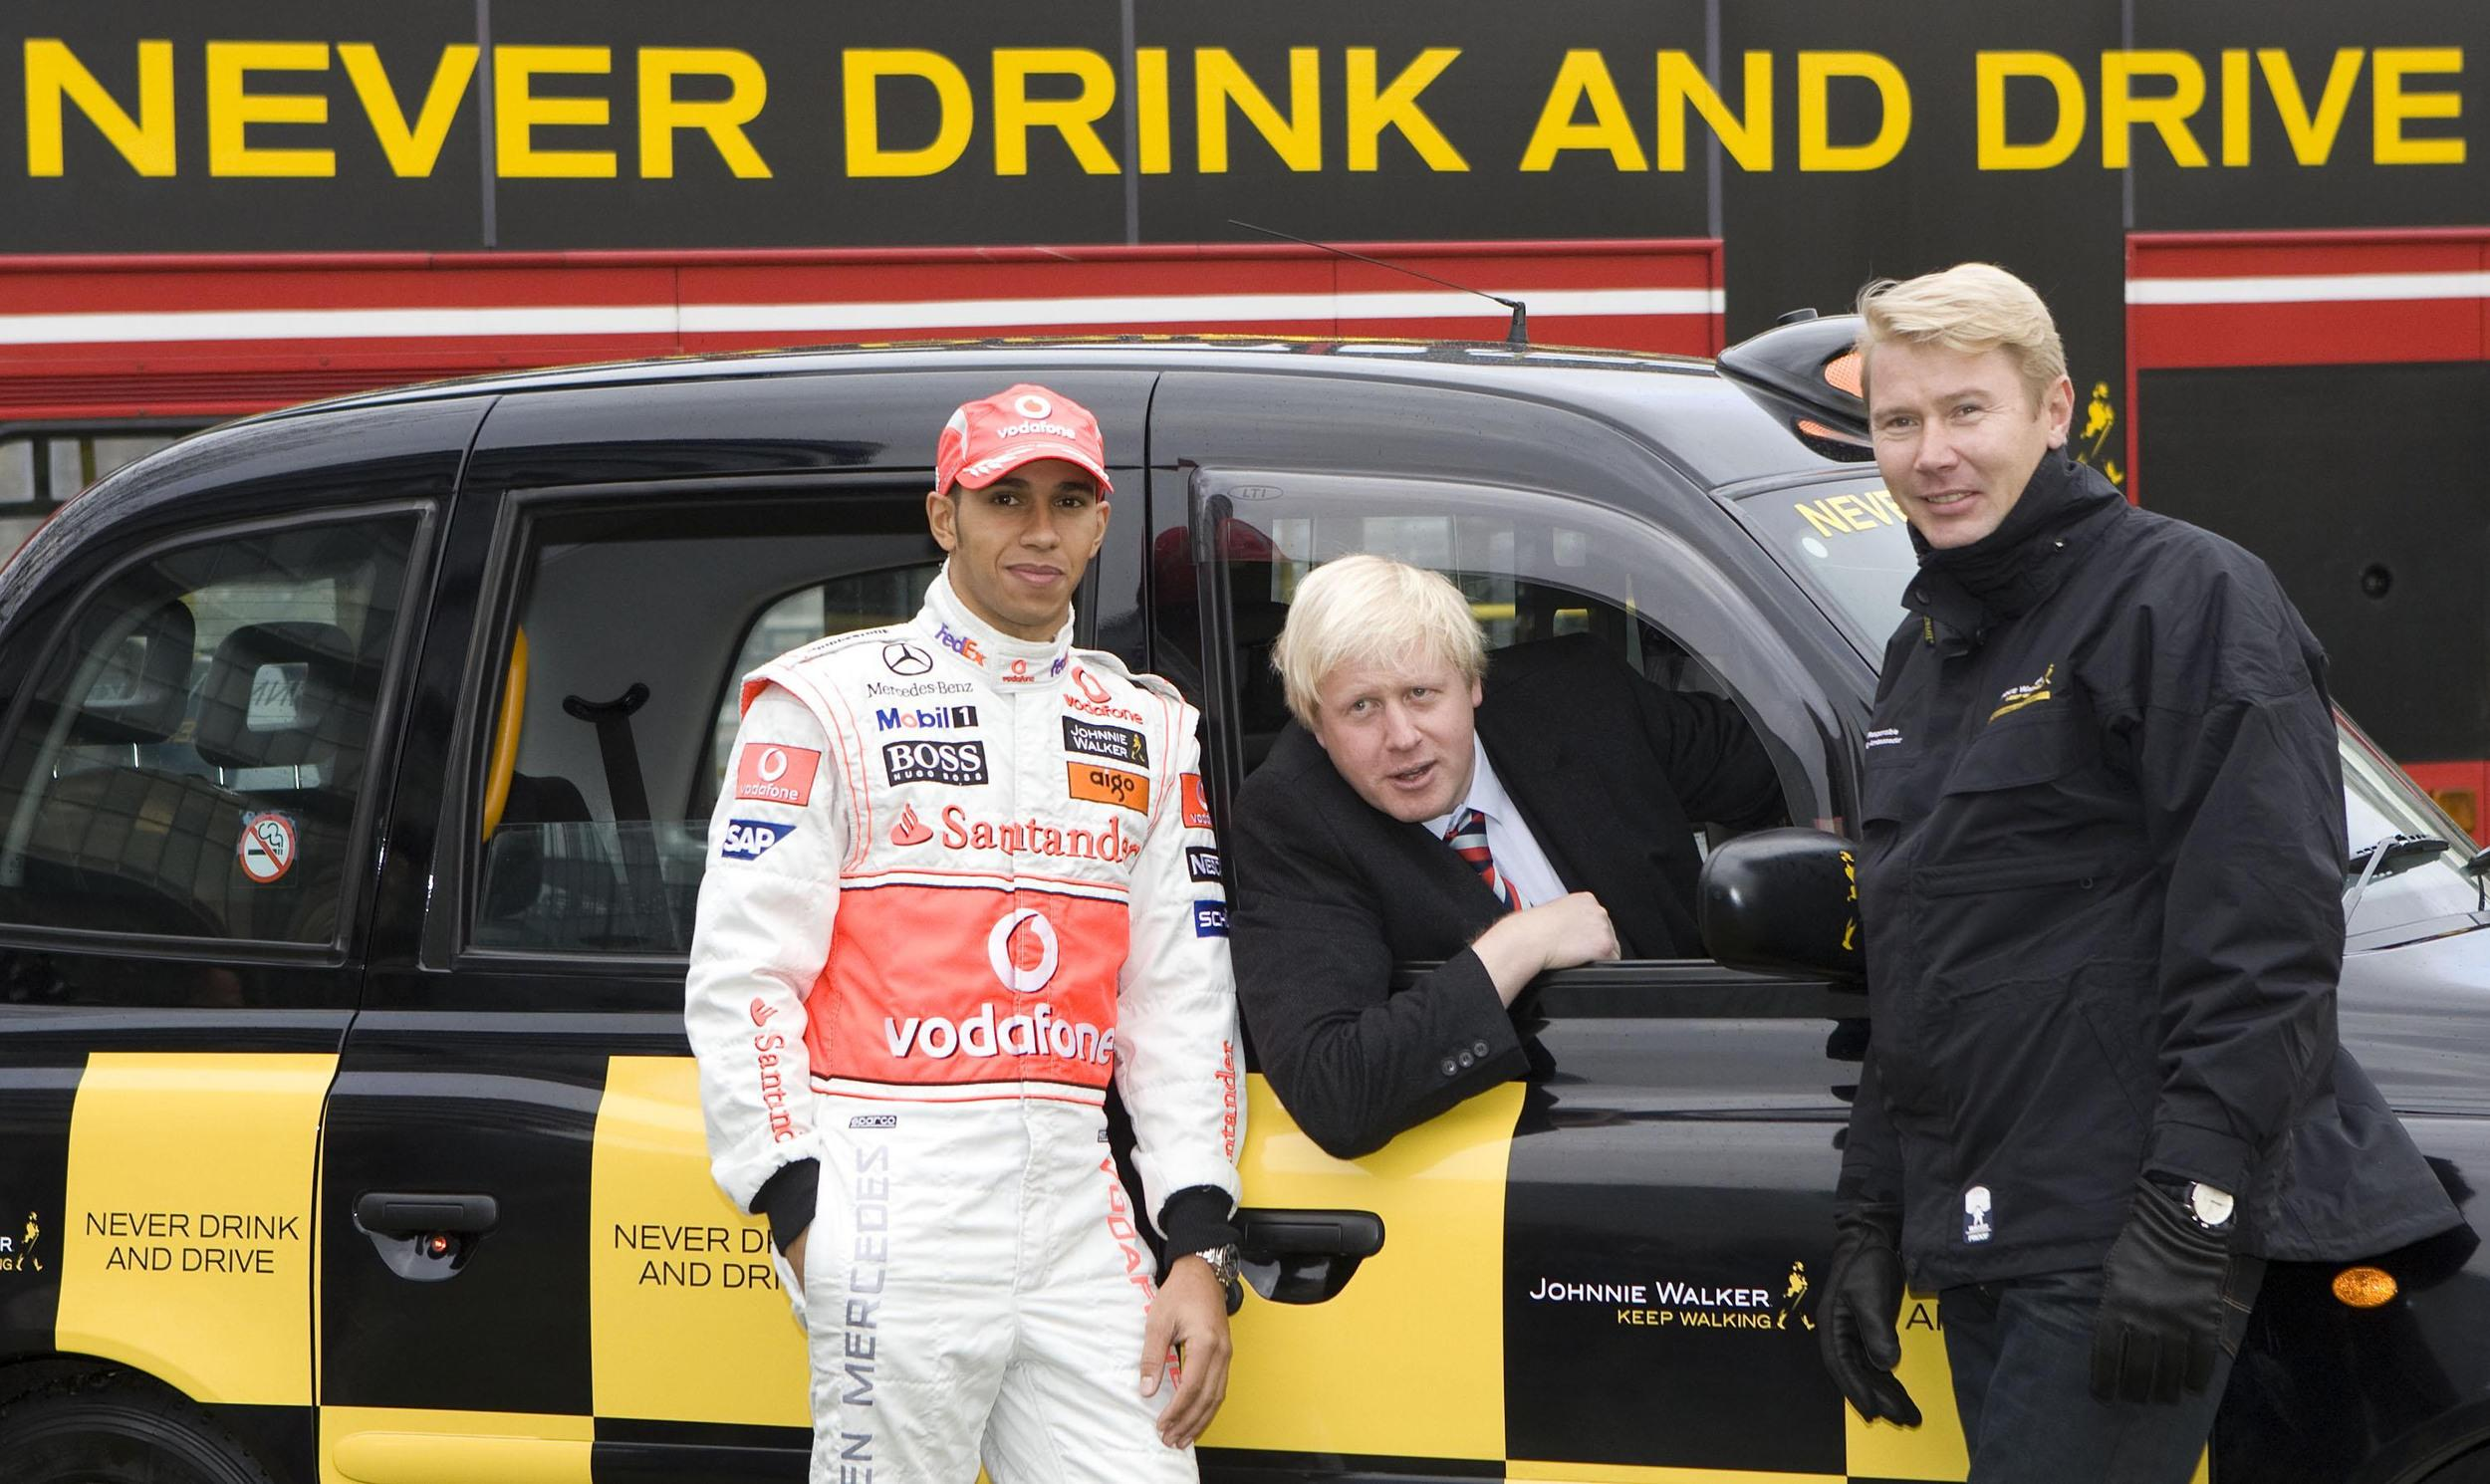 Retired Formula 1 World Champion Mika Hakkinen (right) and current Formula 1 World Champion Lewis Hamilton (left) join Mayor of London Boris Johnson in backing an anti-drink-drive campaign at Potters Fields Park in London.